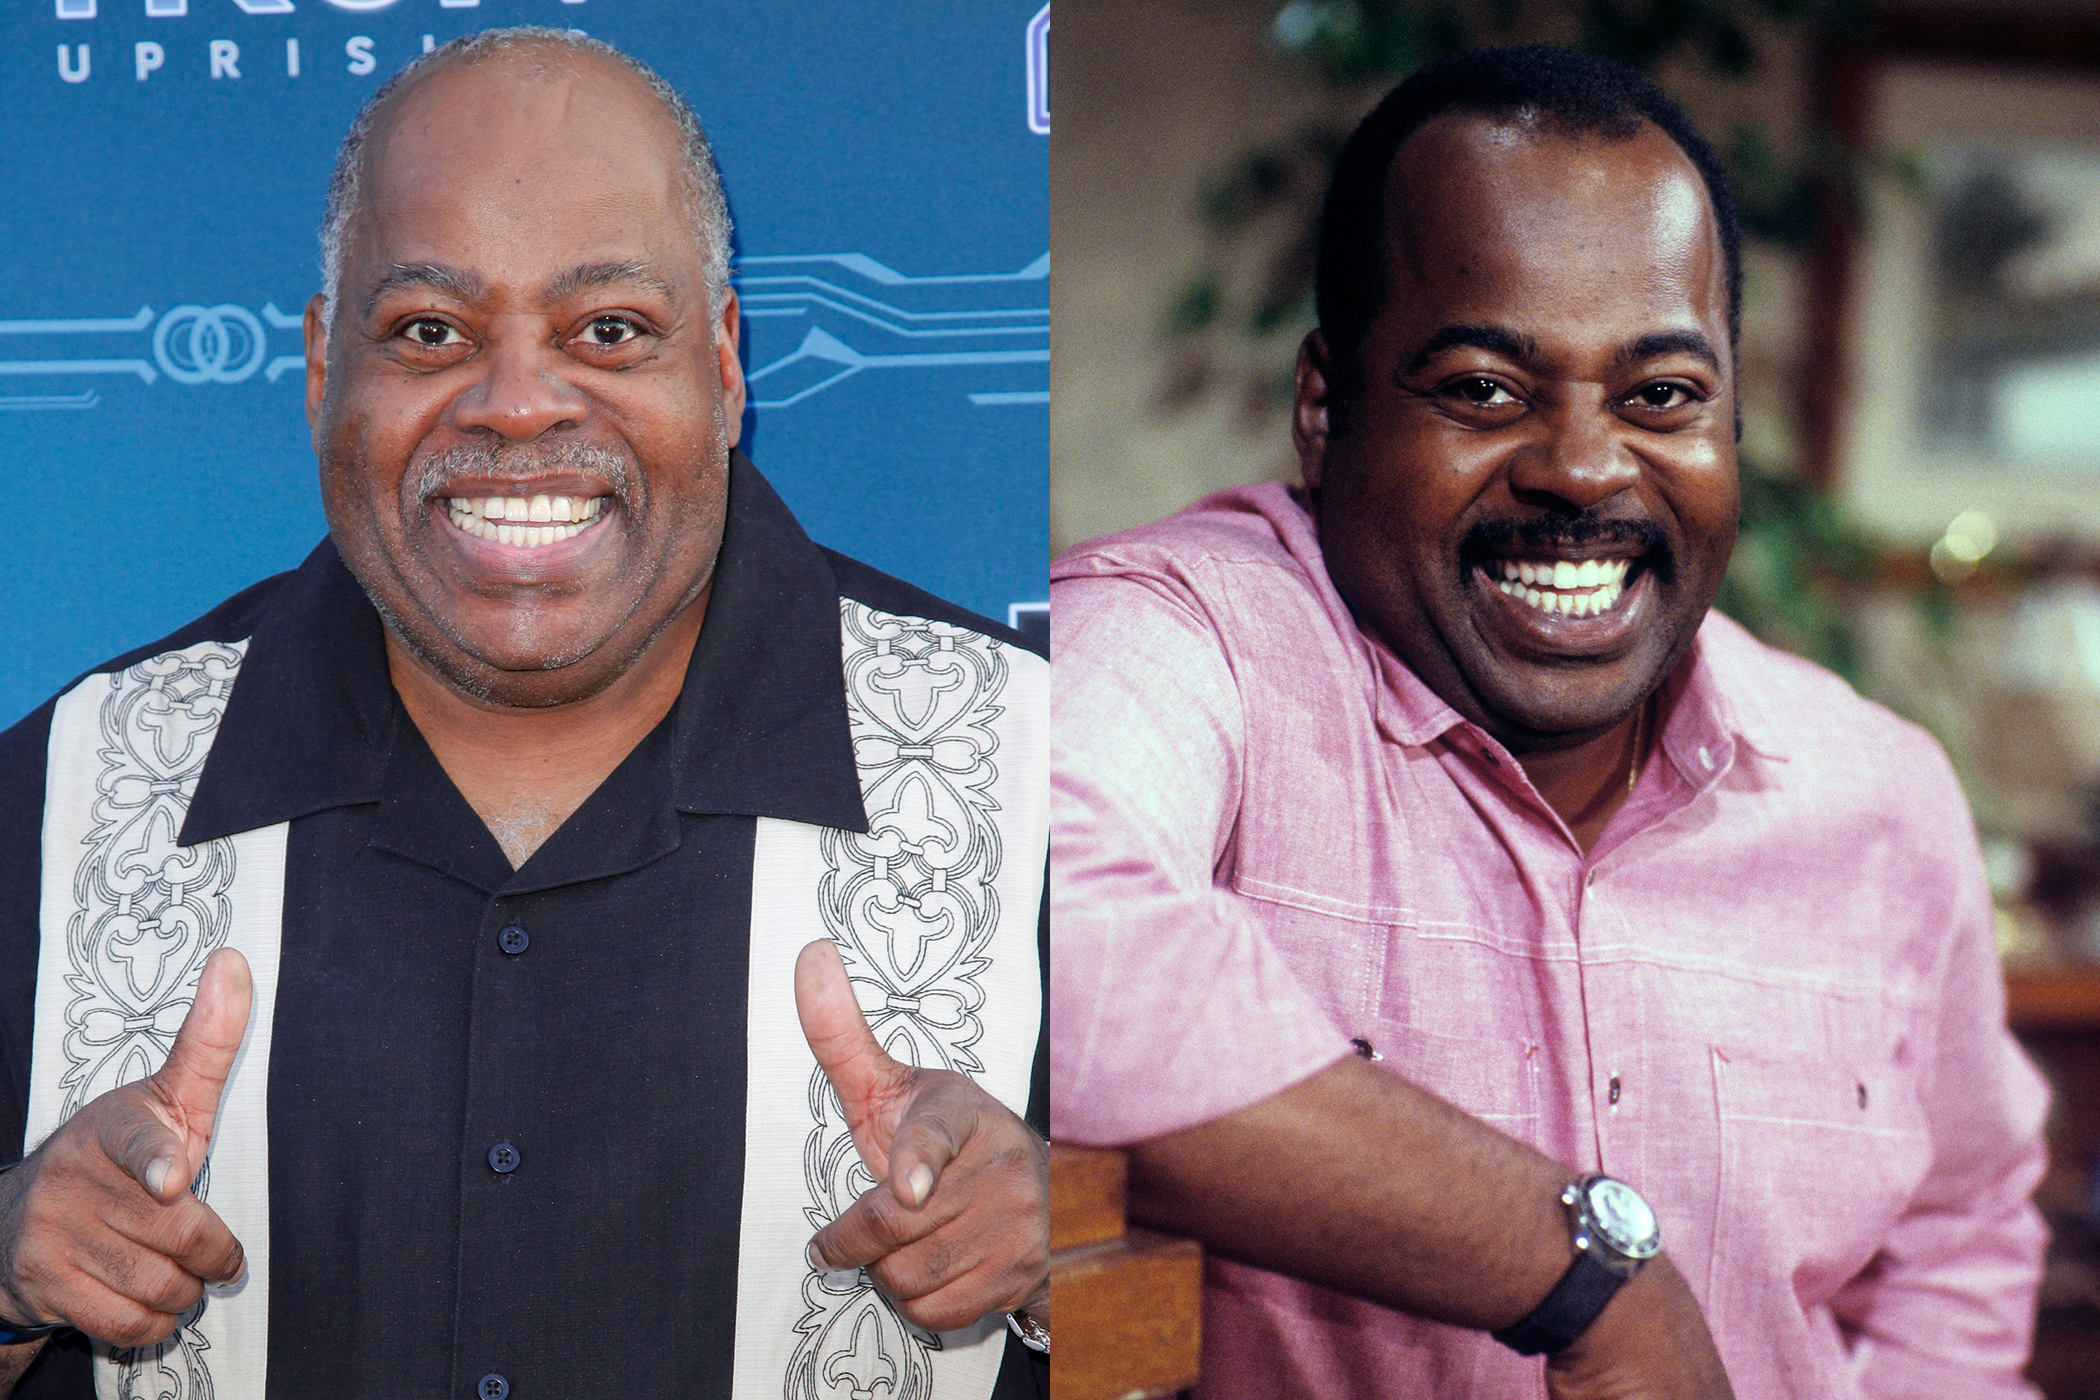 <strong>Reginald VelJohnson.</strong>                                   The Family Matters patriarch has worked steadily since the show ended, guest-starring on everything from Bones to General Hospital to Mike &amp; Molly, in addition to film and theater roles. Most recently VelJohnson has had a recurring role on the Rachel Bilson vehicle Hart of Dixie, playing a small-town blogger.